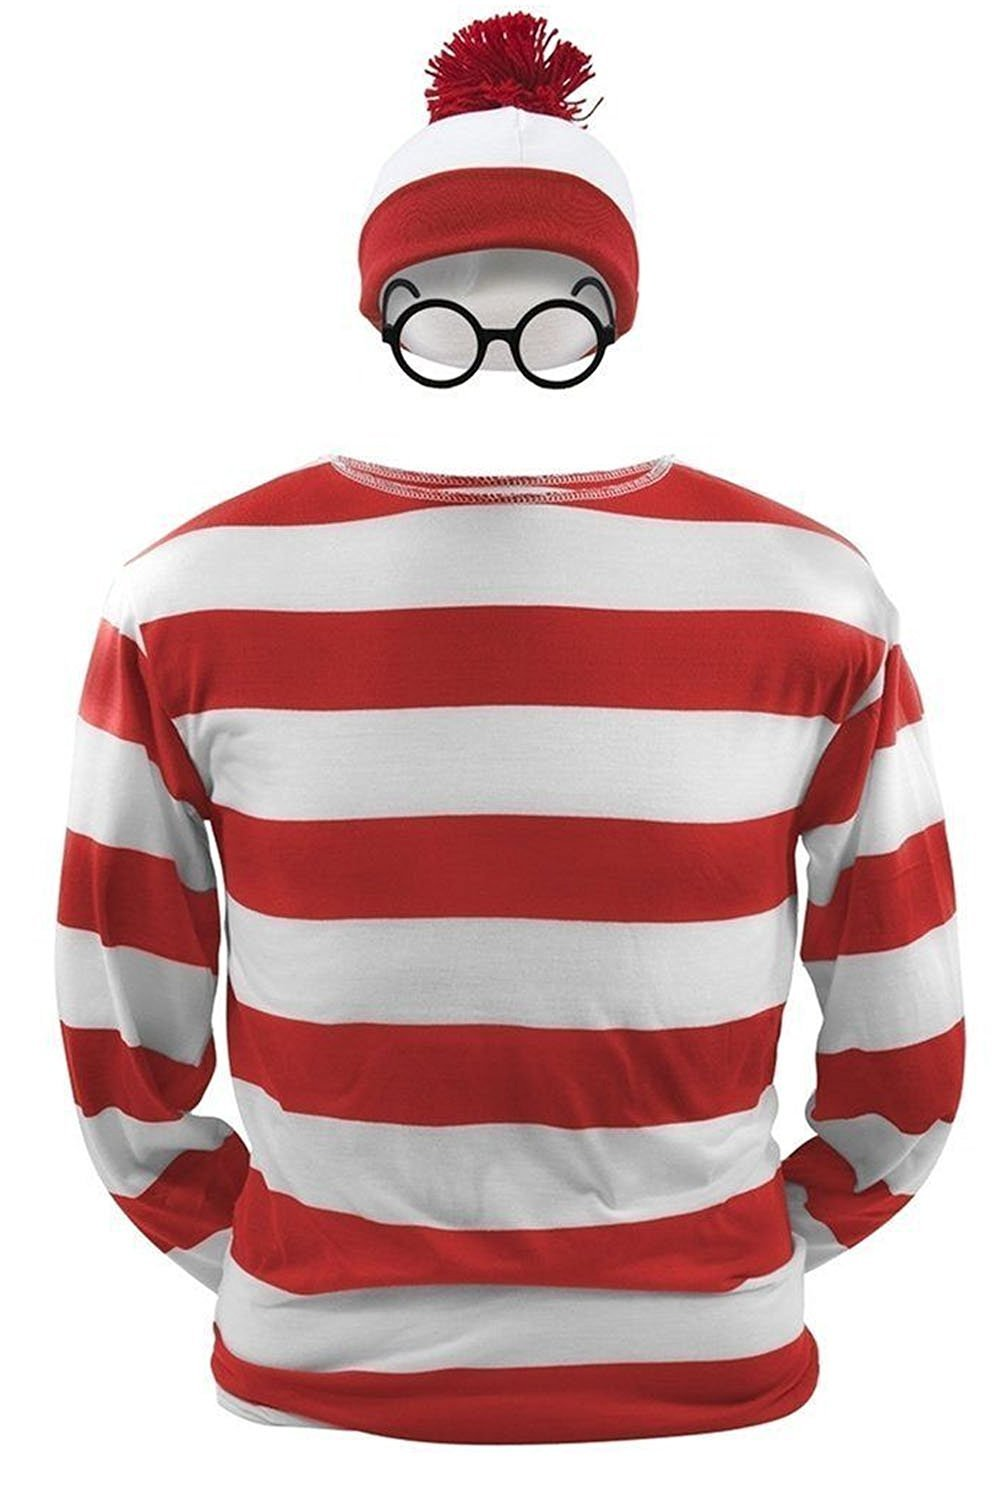 Where's Waldo Waldo  Waldo & Friends Camisa Cosplay Disfraz